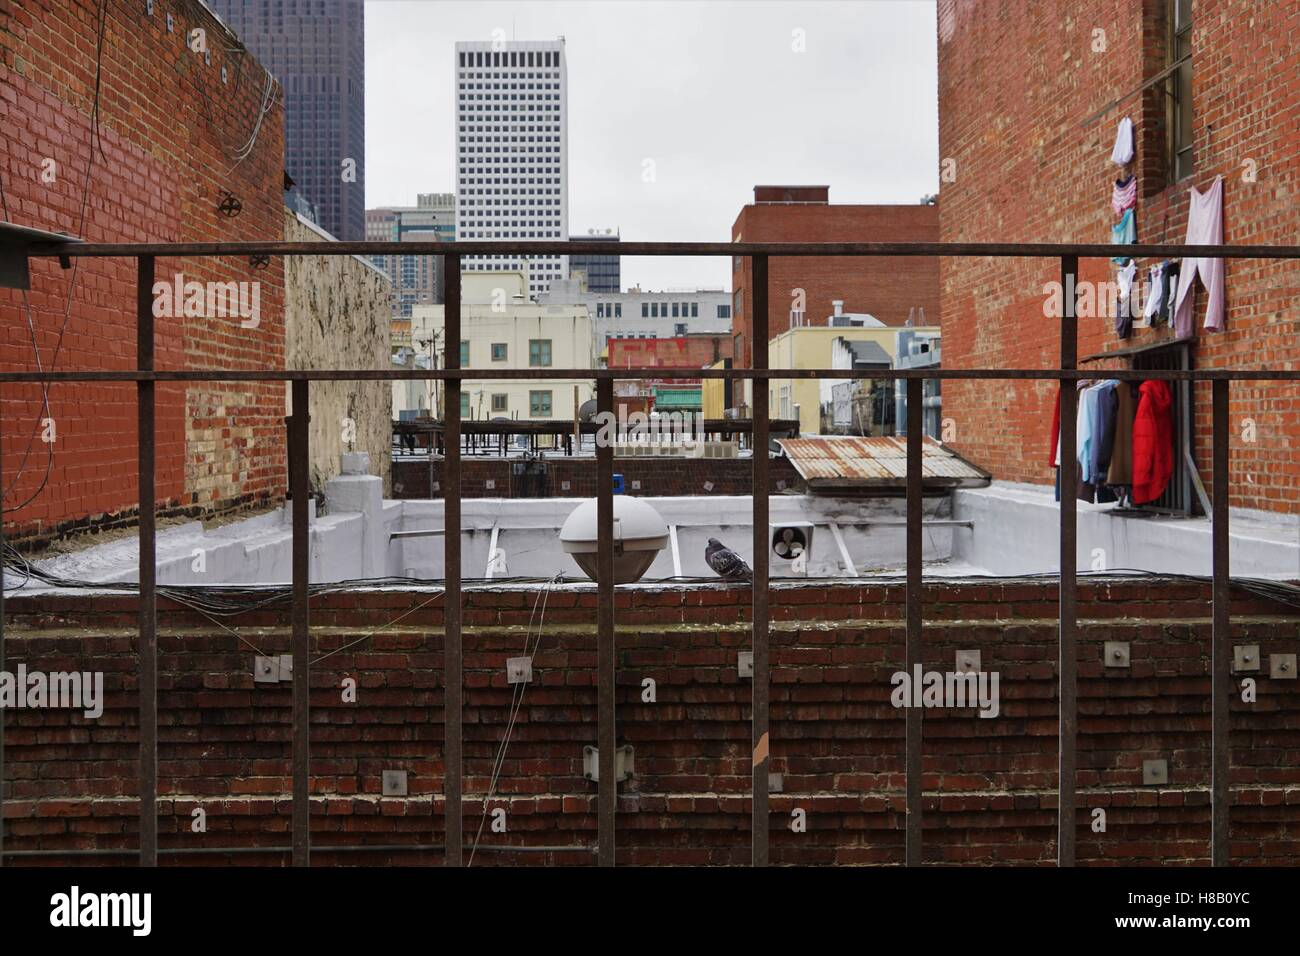 Pigeon behind bars with clothes on the wall - backstreet San Francisco - Stock Image